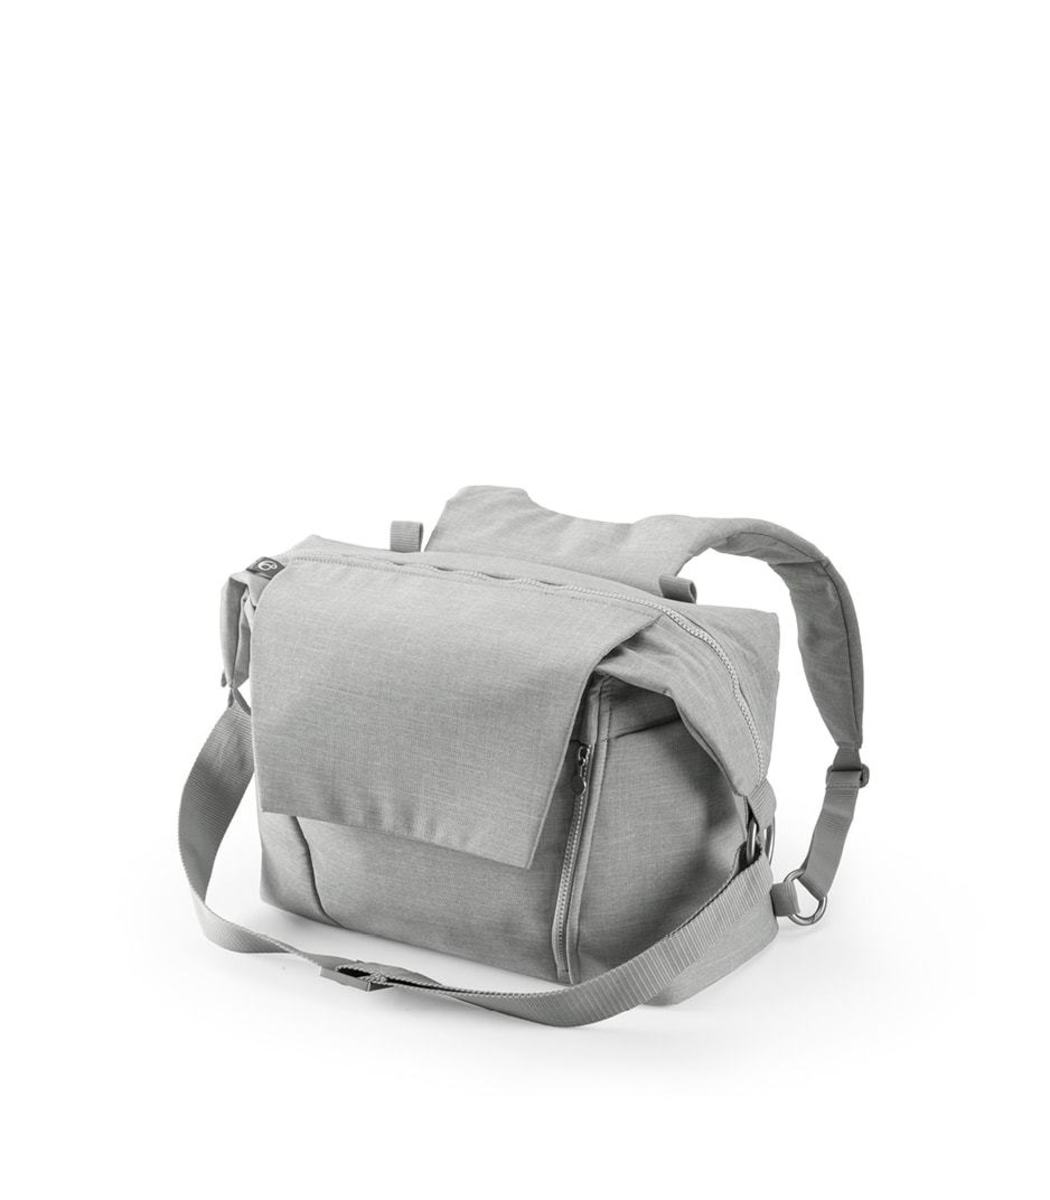 <p>Stokke Accessories - Available catalogue wide</p>